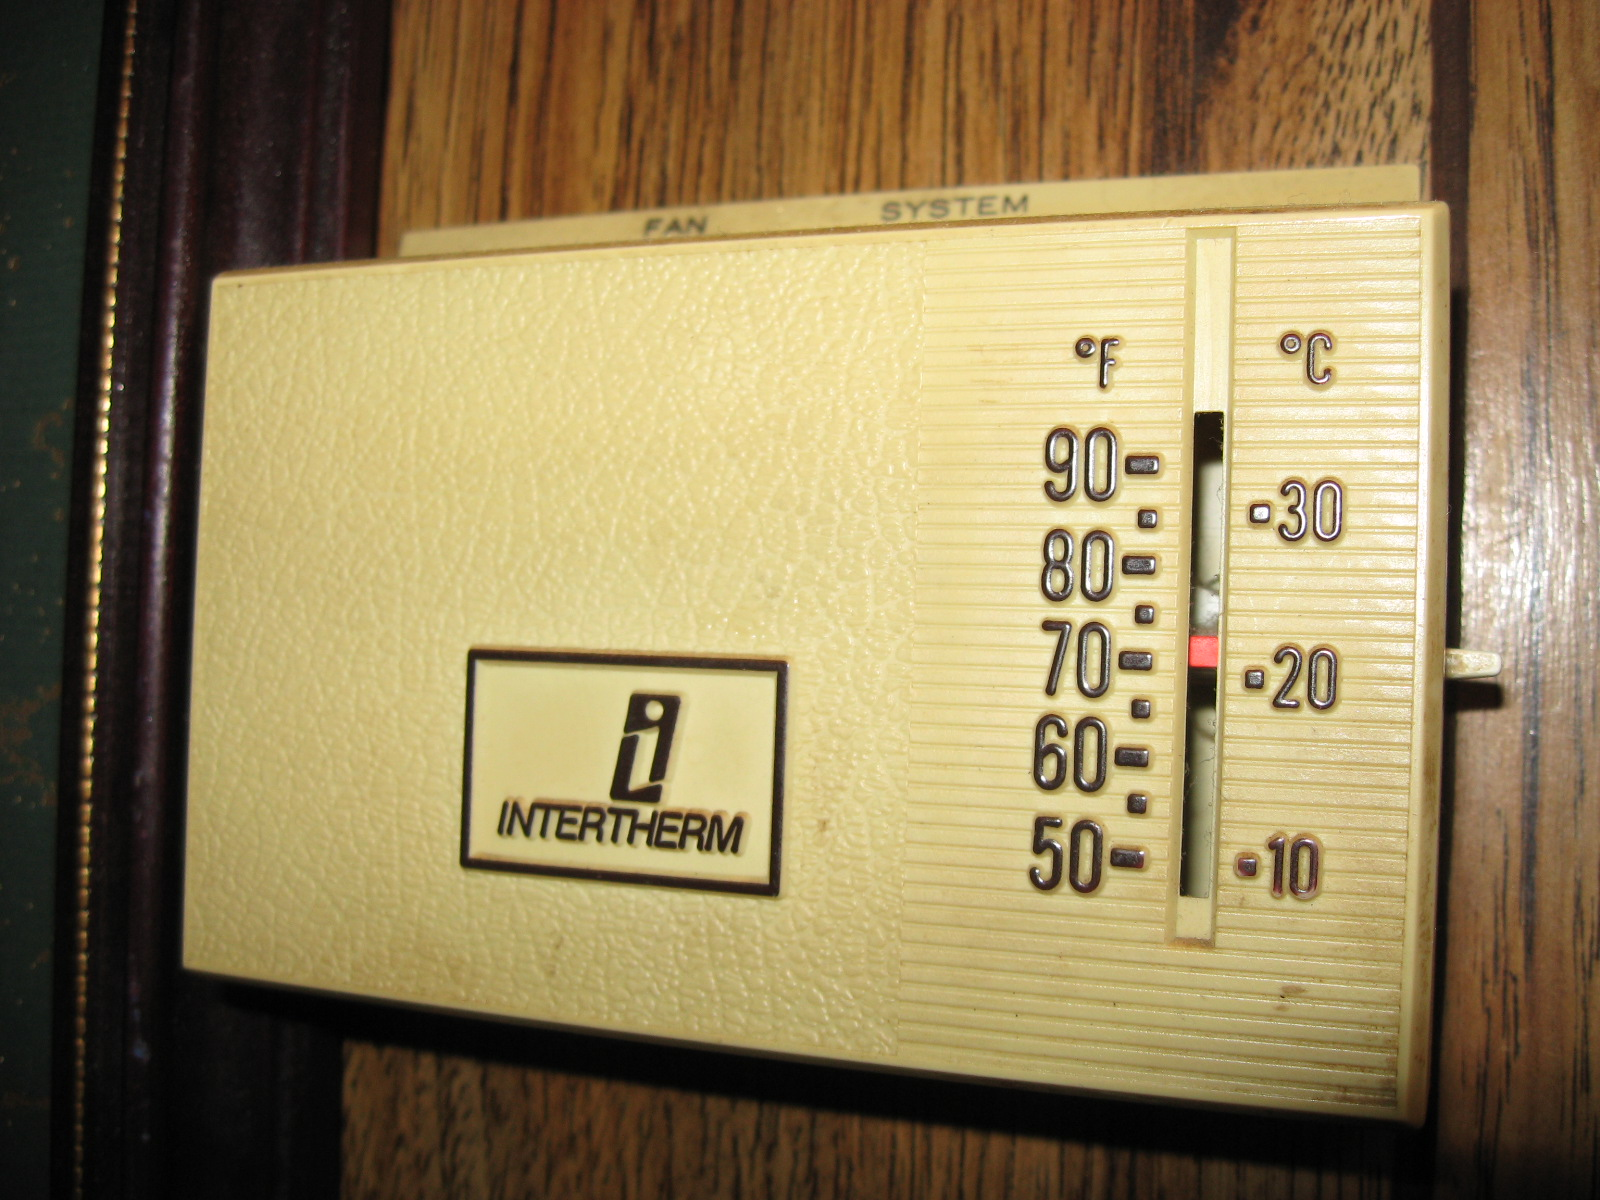 intertherm thermostat wiring diagram mansfield flush valve furnace get free image about